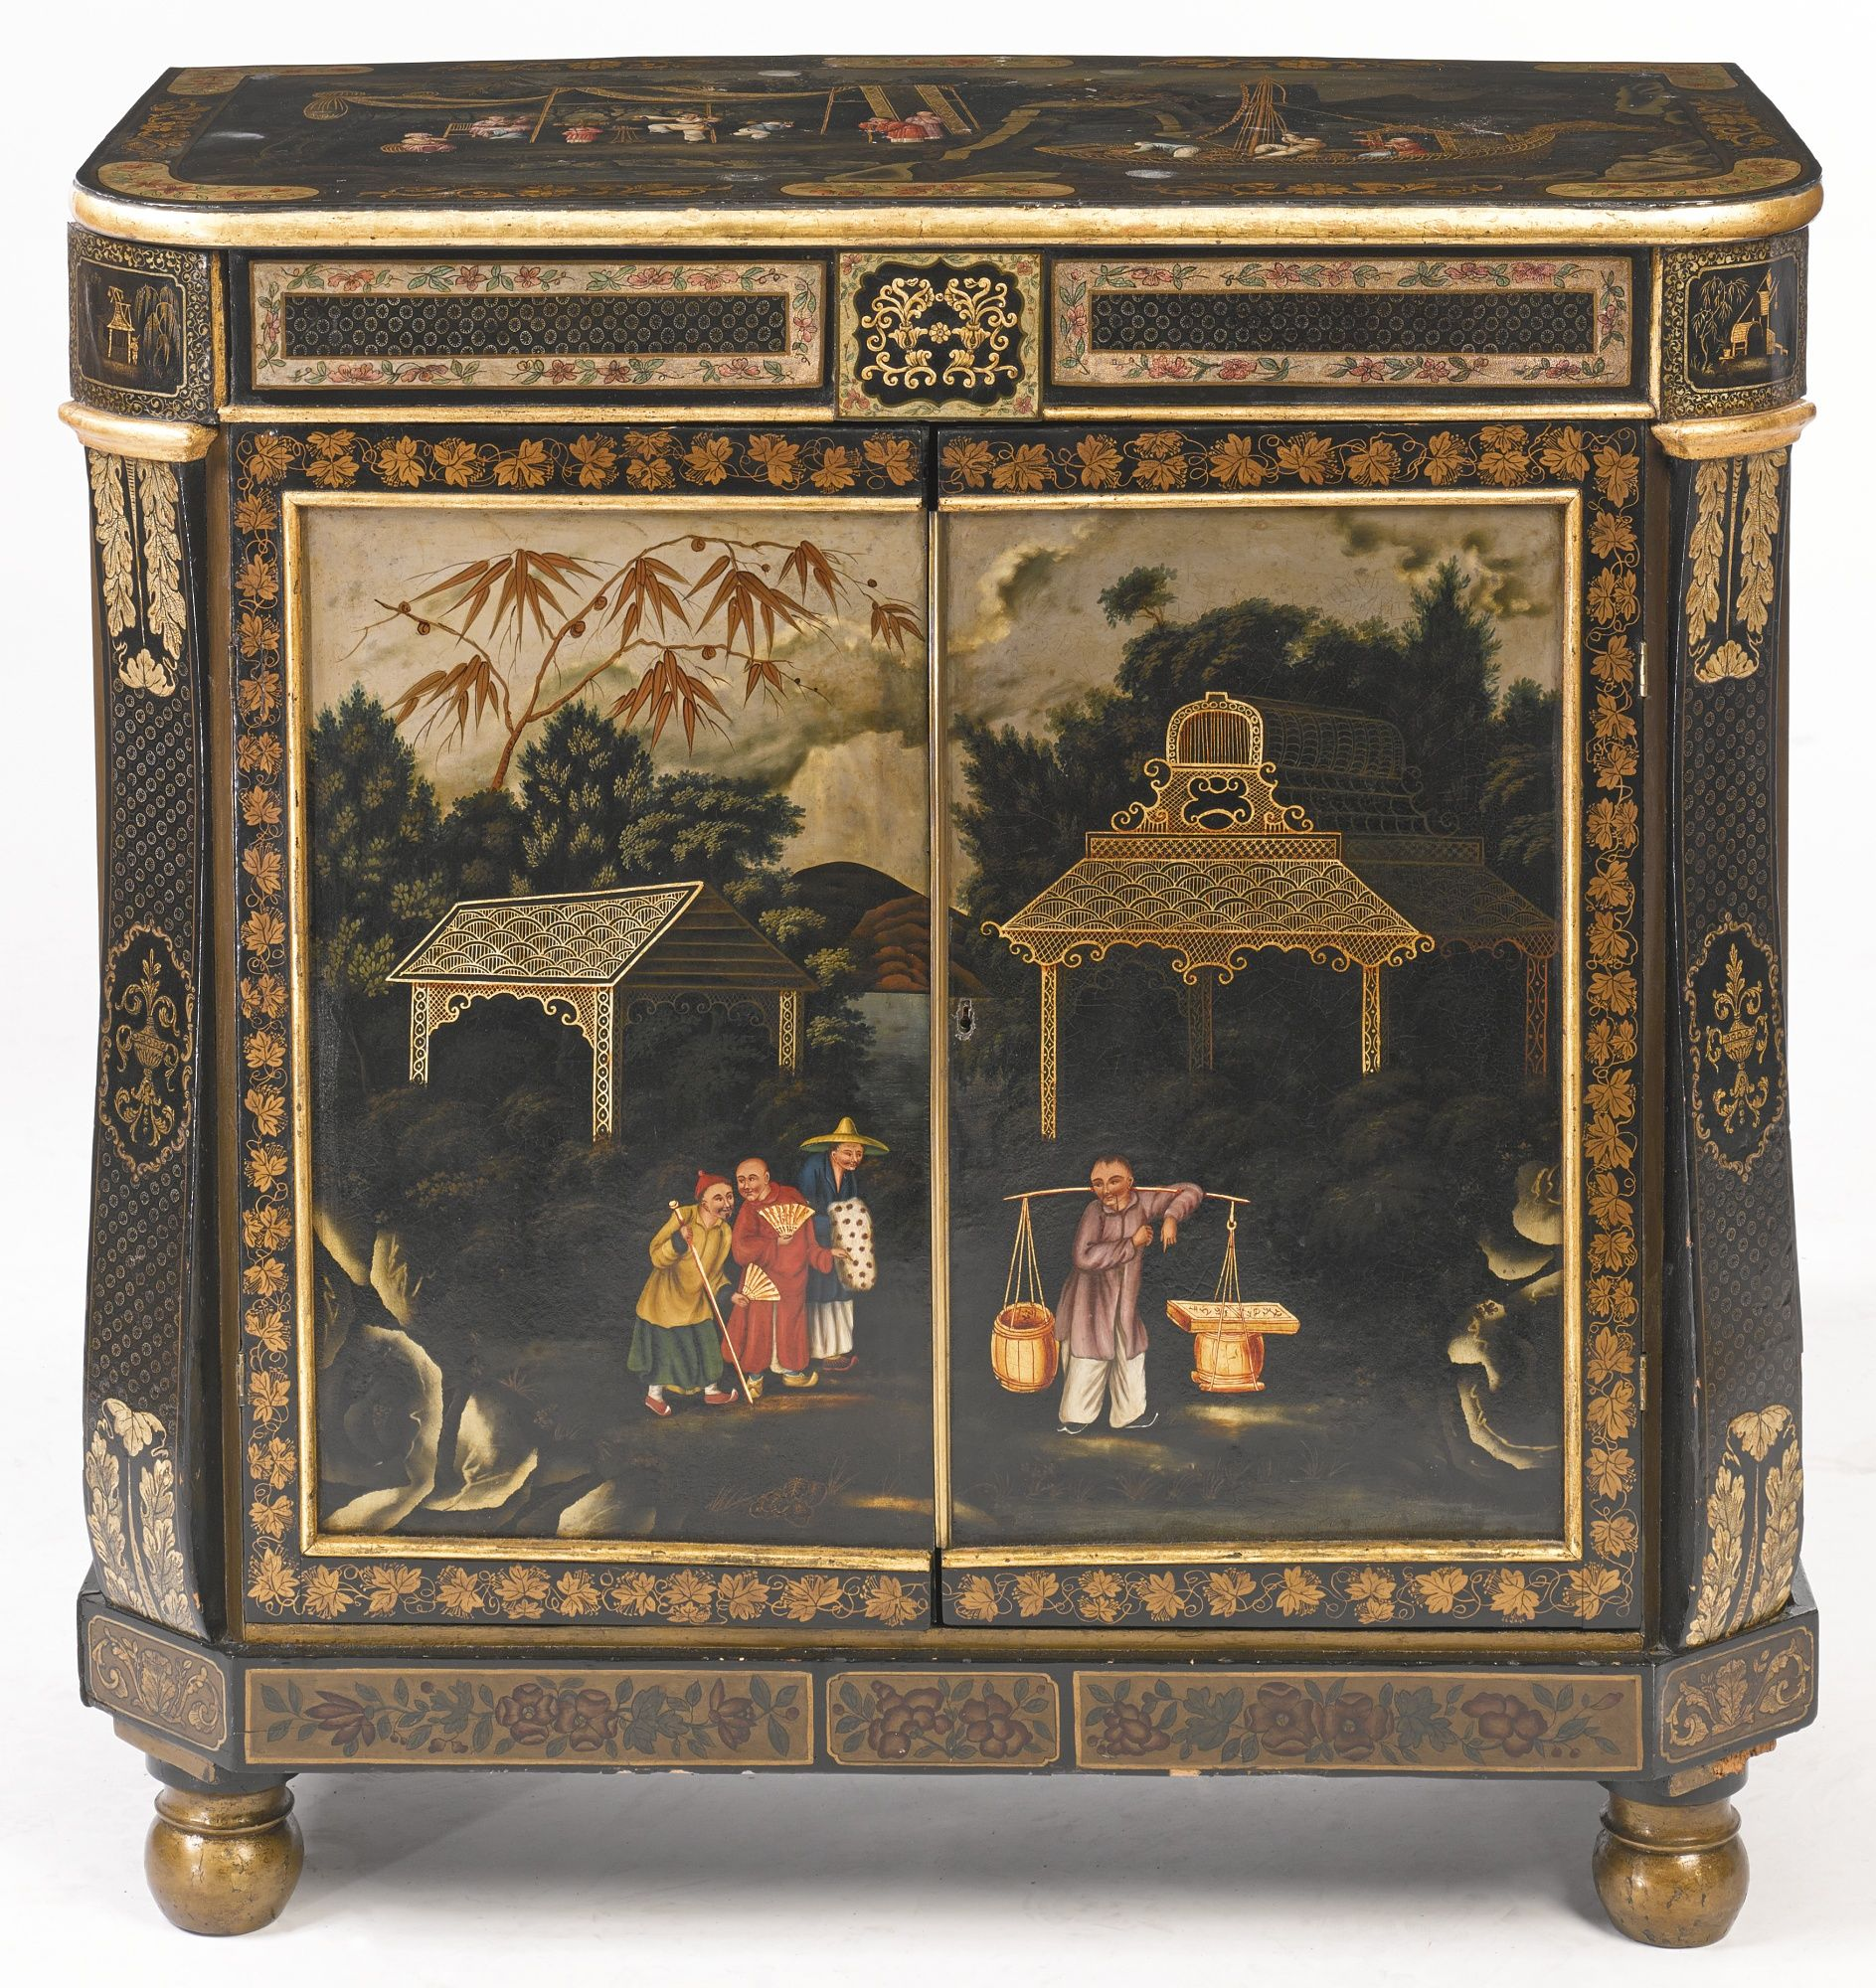 Muebles Italianos Clasicos A Fine And Rare Regency Polychrome Japanned Chinoiserie